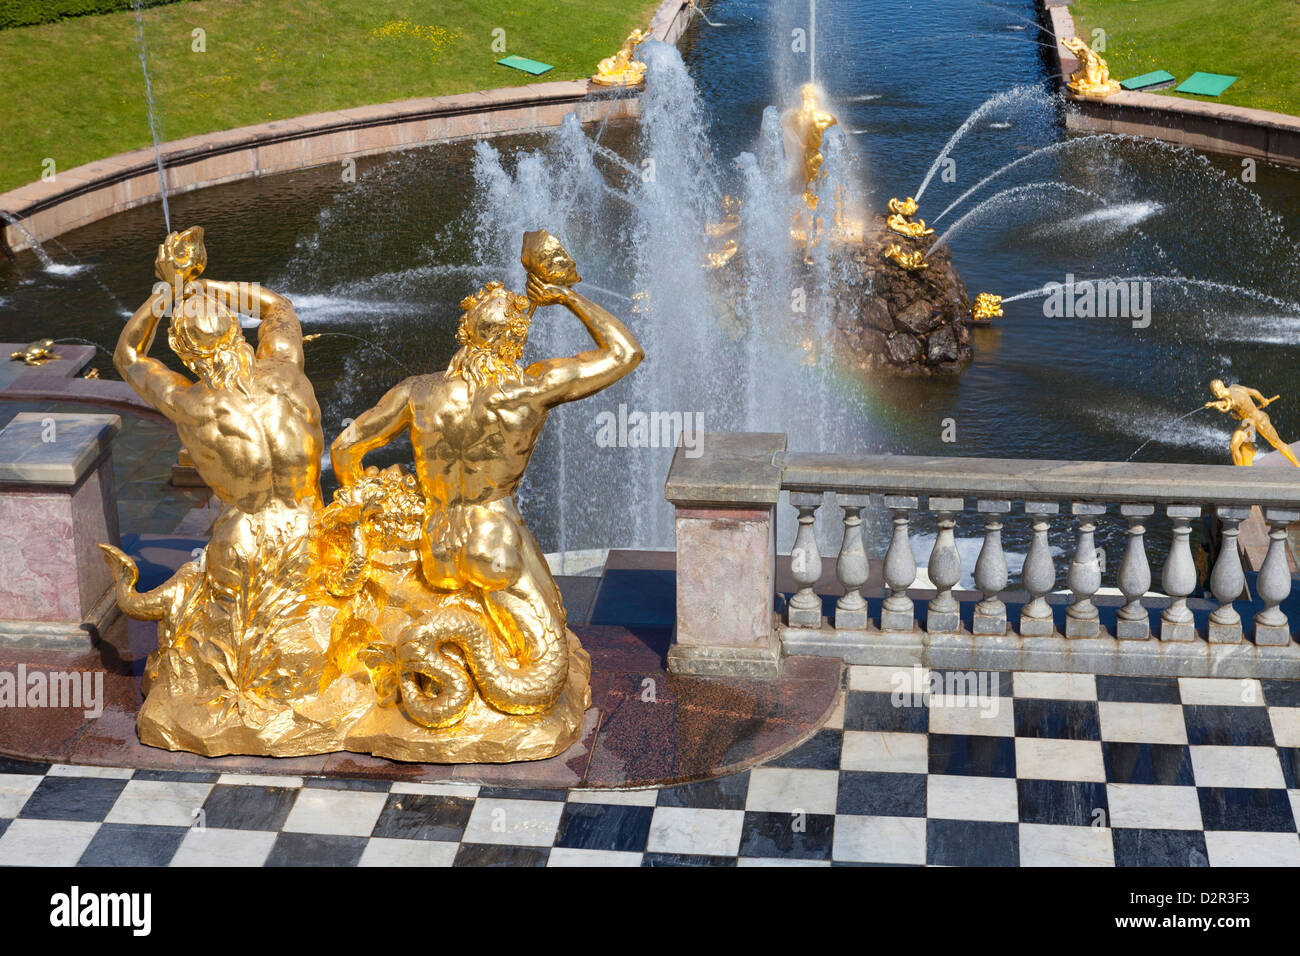 Golden statues and fountains of the Grand Cascade at the Peterhof Palace, St. Petersburg, Russia, Europe Stock Photo